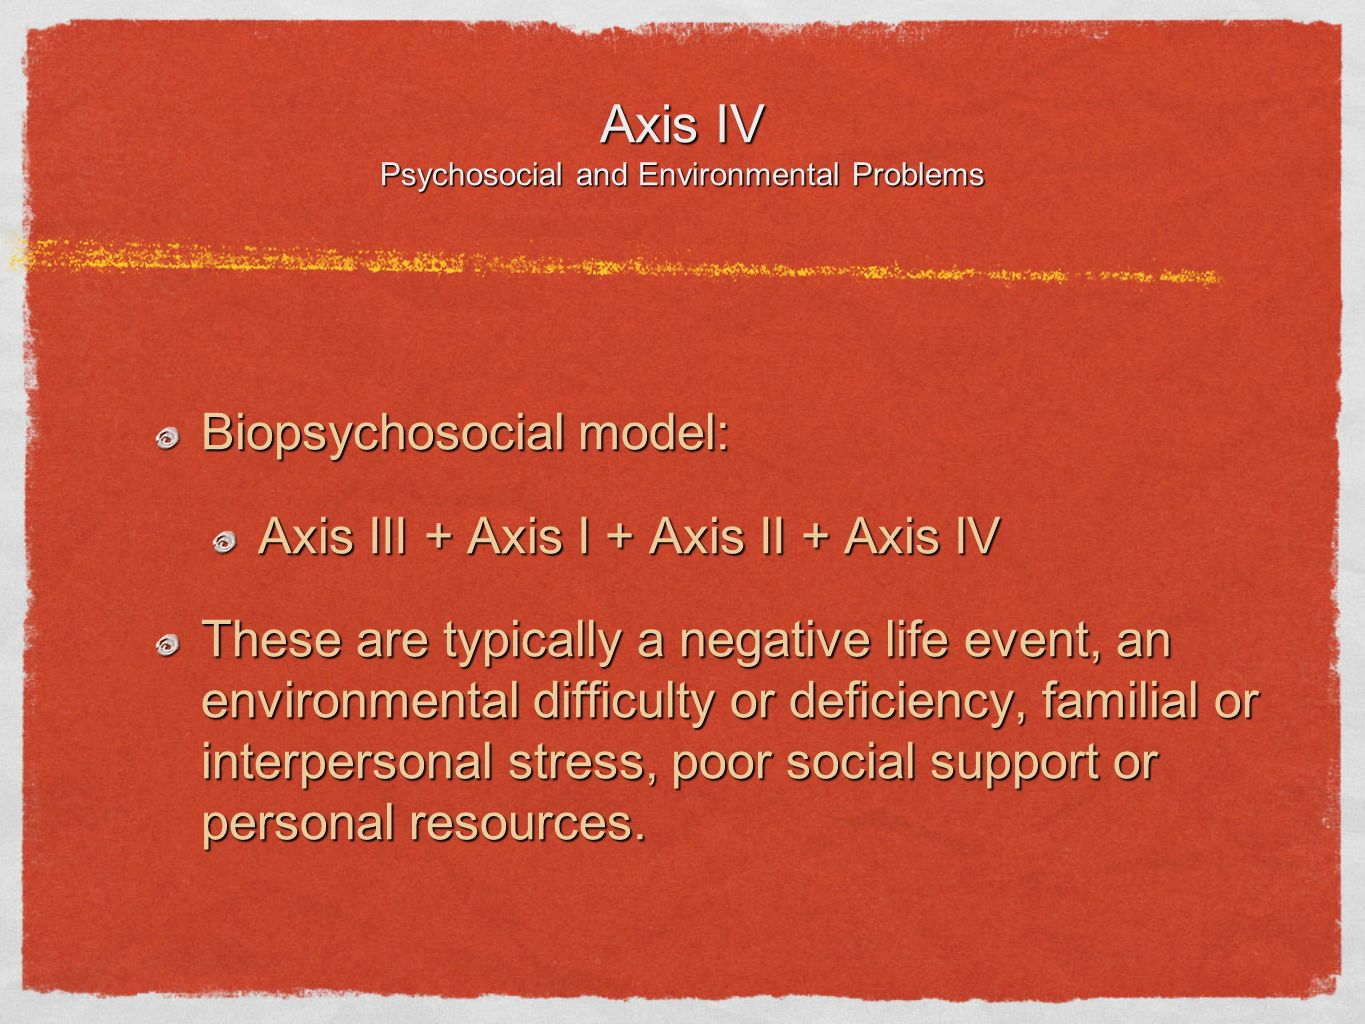 Axis IV Psychosocial and Environmental Problems Biopsychosocial model: Axis III + Axis I + Axis II + Axis IV These are typically a negative life event